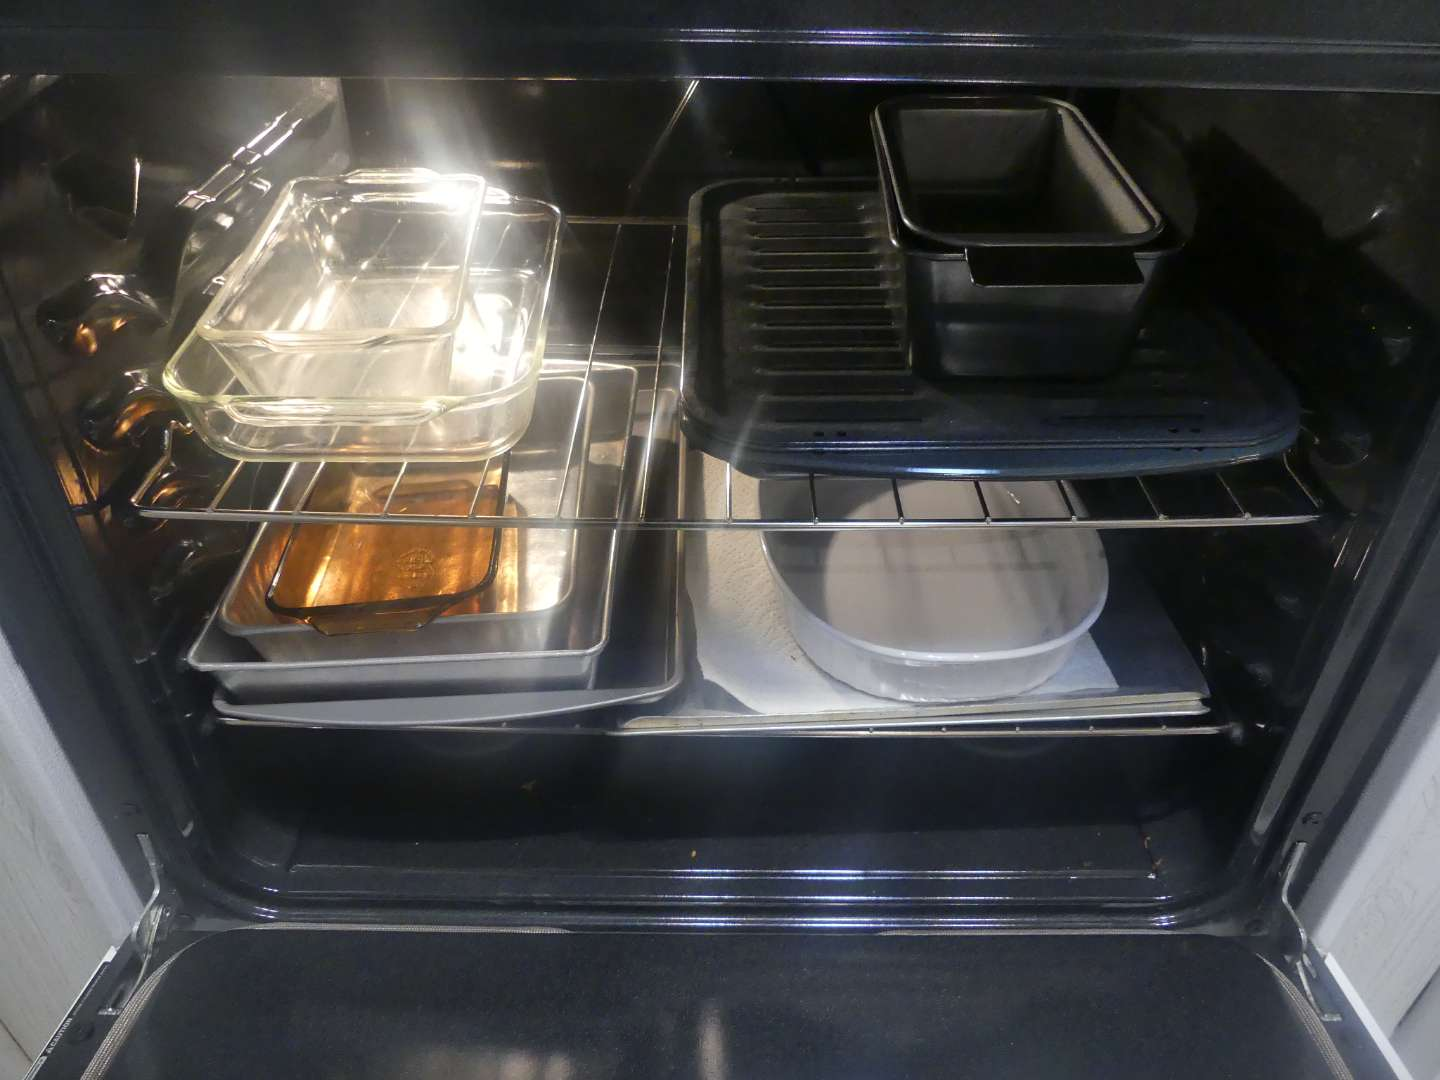 Lot #43 Oven Full of Pans - Oven Not Included